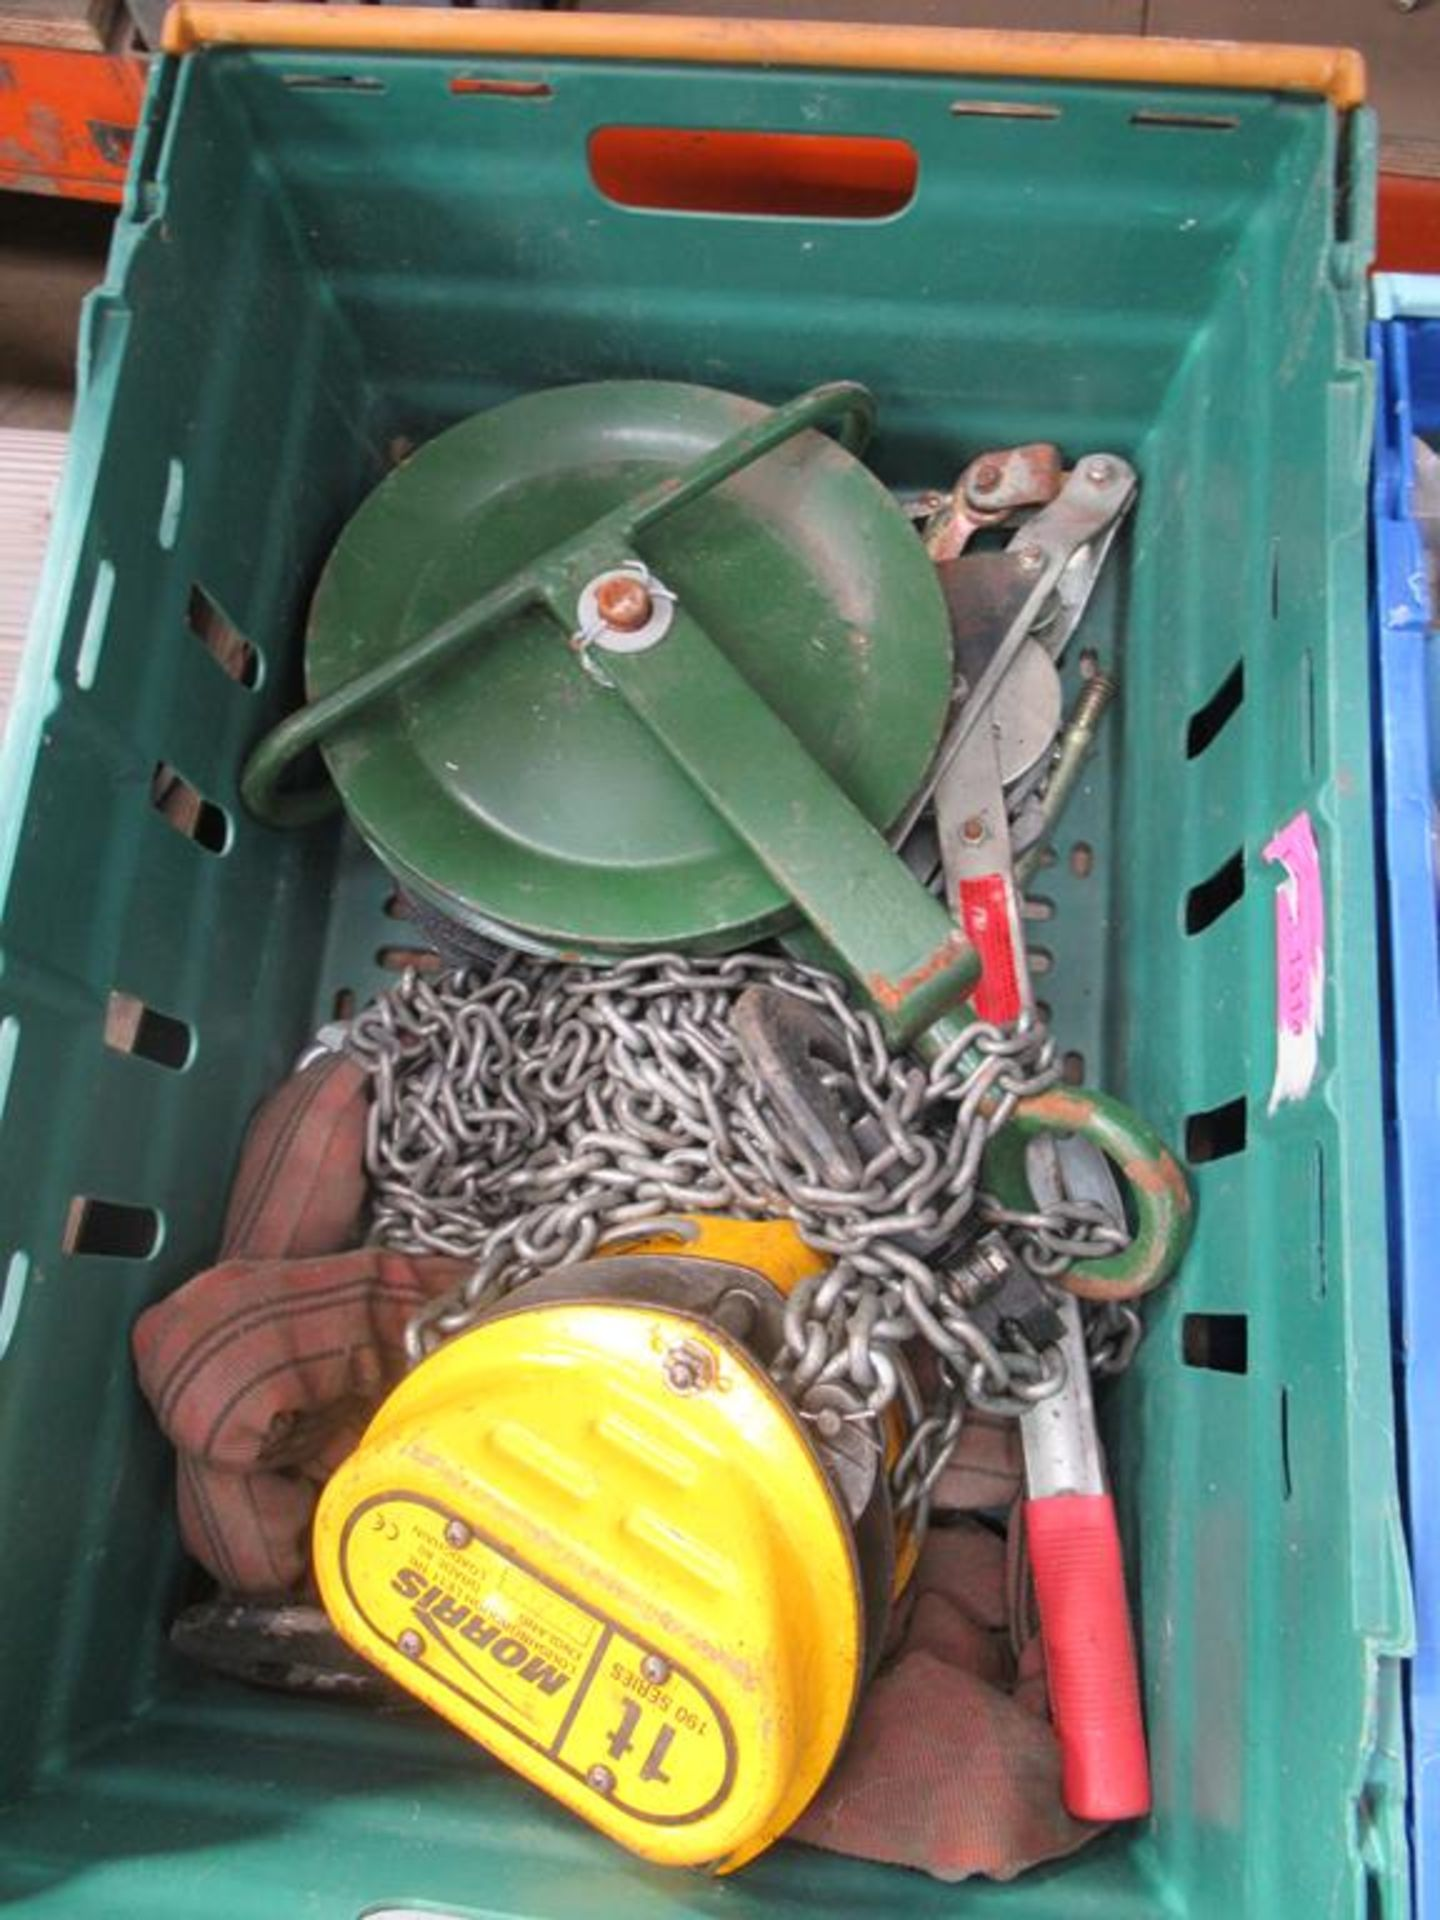 Pallet of automotive equipment/consumables - Image 3 of 9